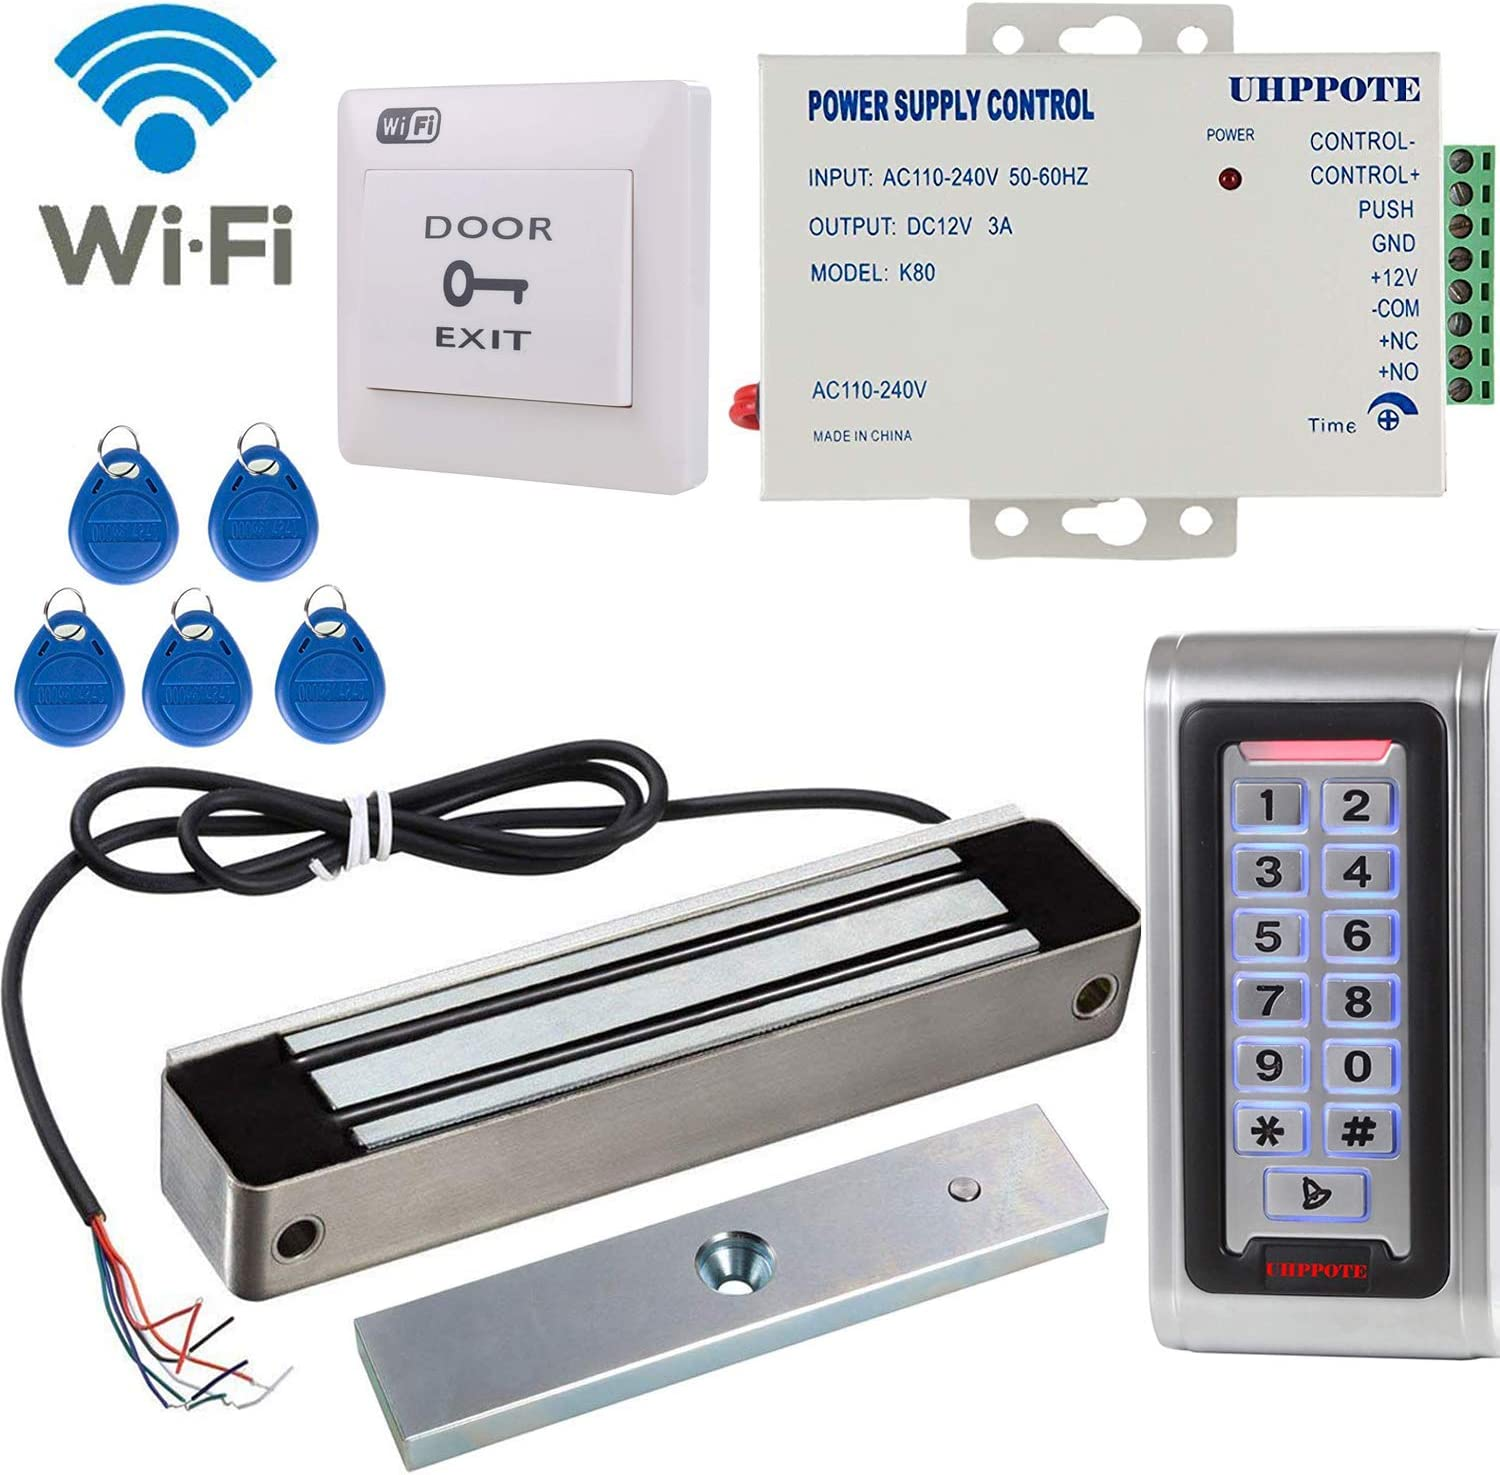 Door Access Control System Outswinging 600lbs Electromagnetic Lock Kit Wifi 2.4ghz  Camera & Photo